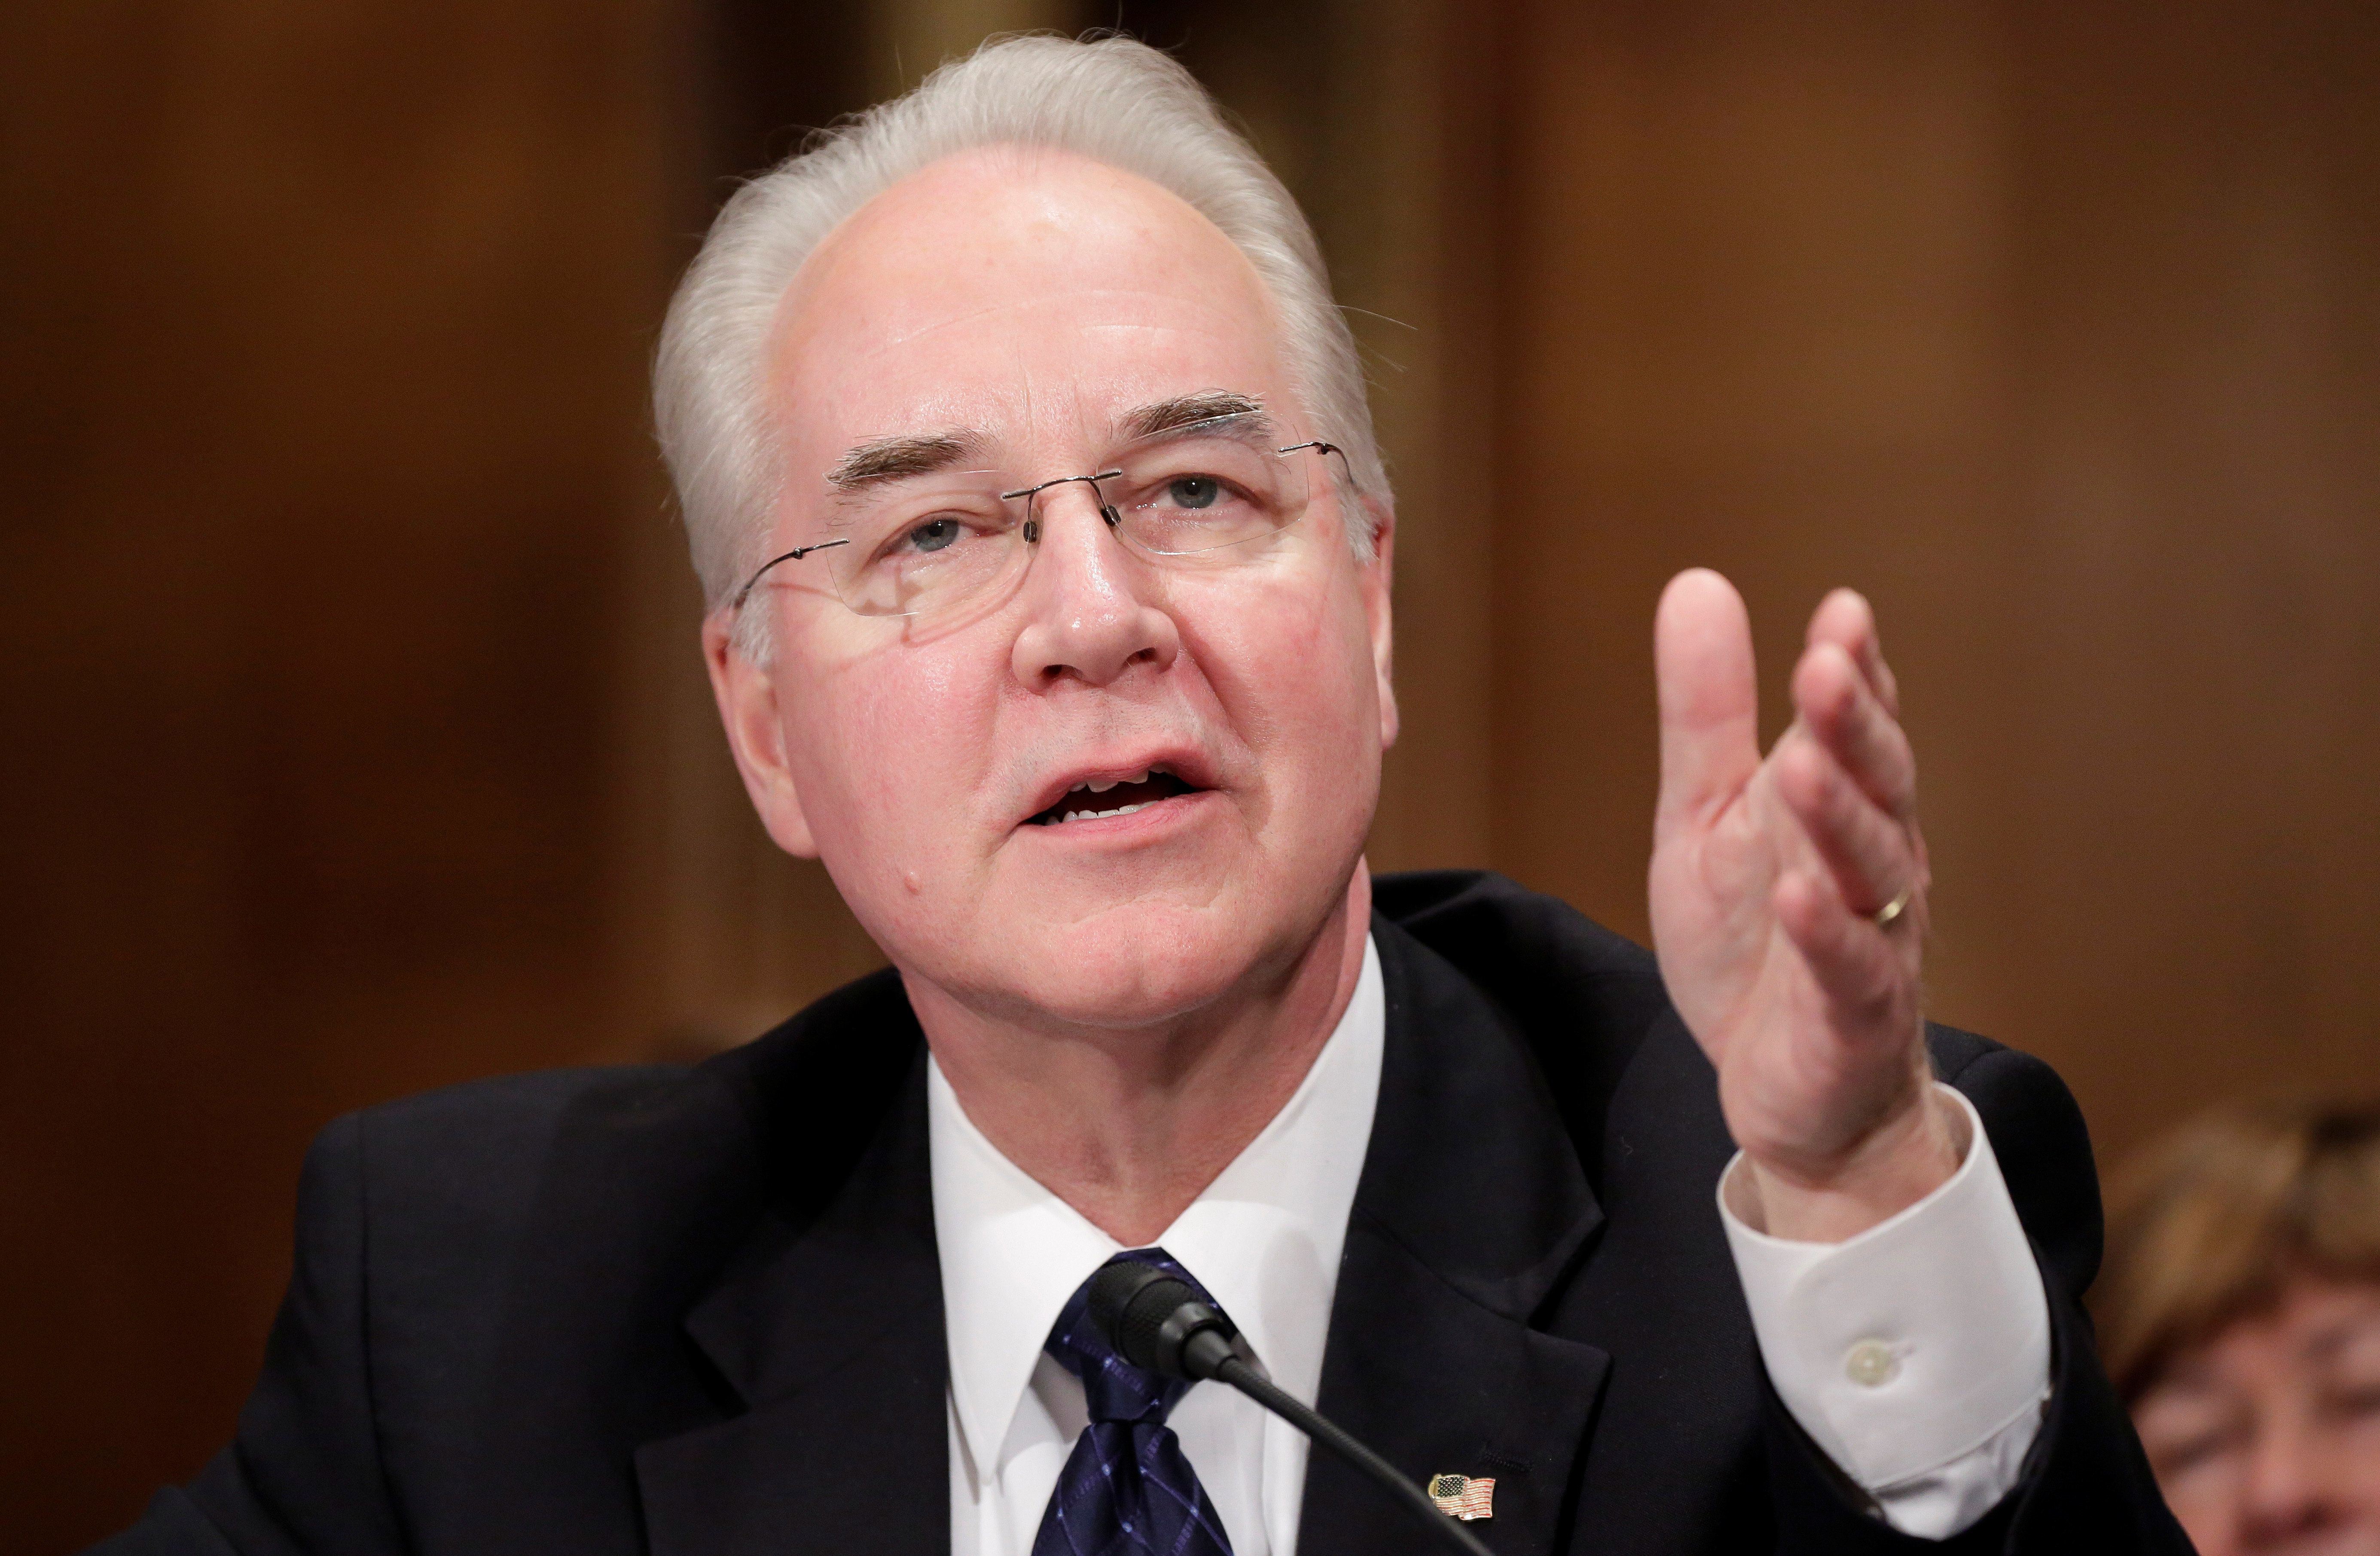 Rep. Tom Price (R-GA) testifies before the Senate Health, Education, Labor and Pensions Committee on his nomination to be Health and Human Services secretary in Washington, U.S., January 18, 2017.      REUTERS/Joshua Roberts